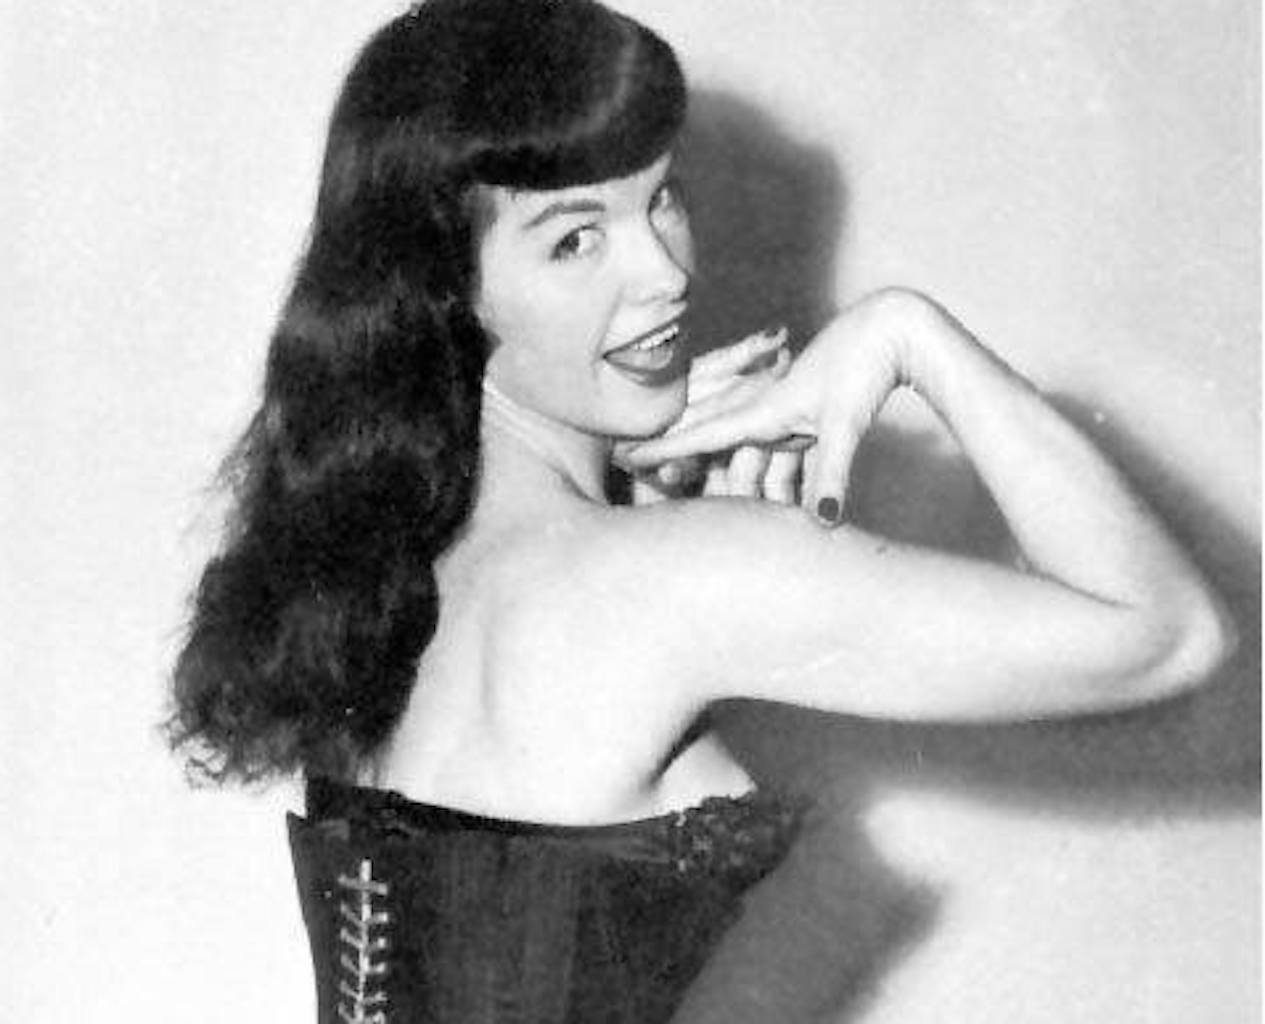 chi era bettie page